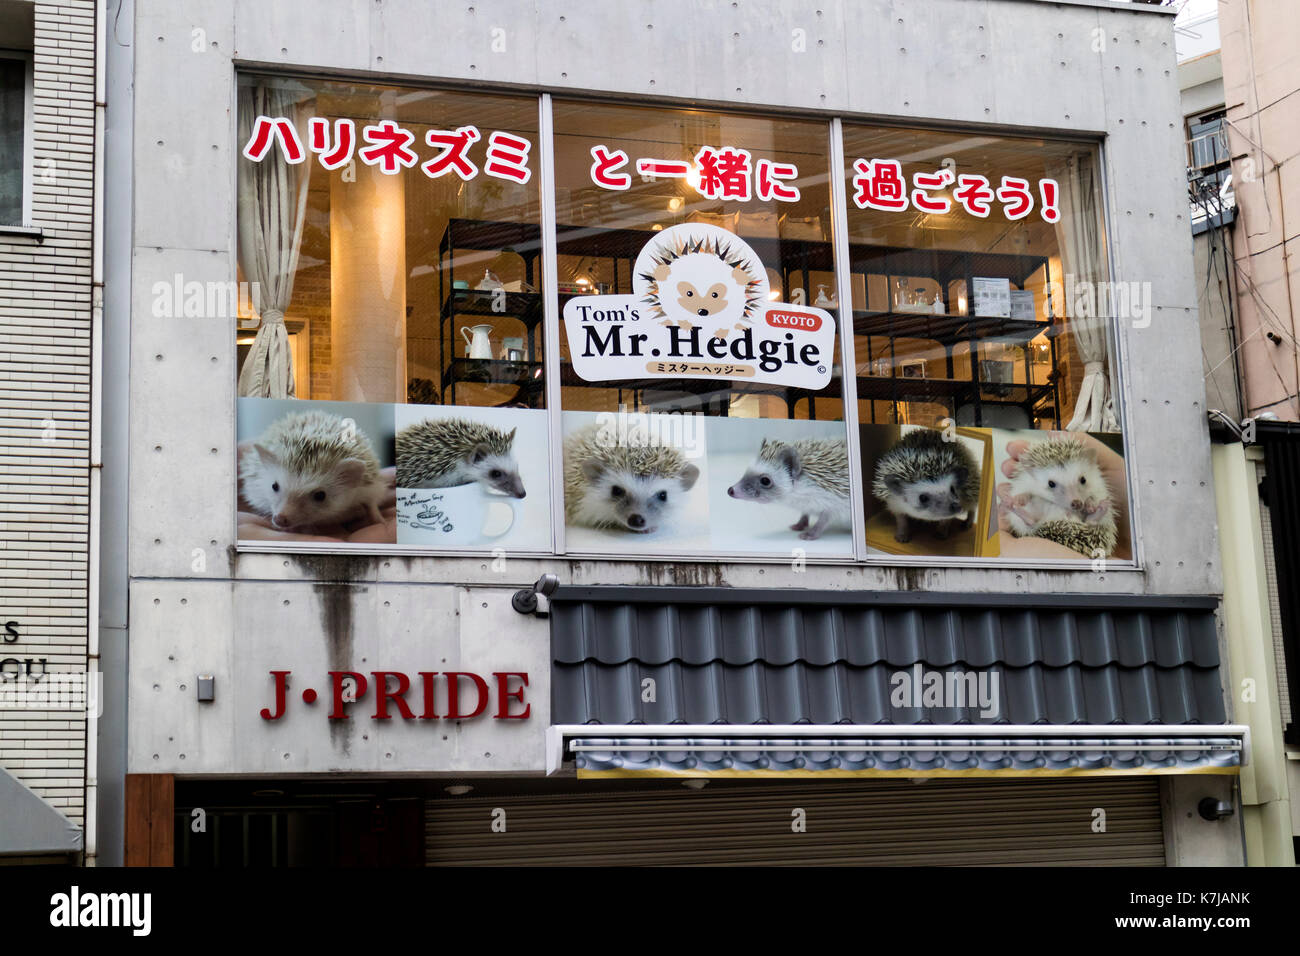 Kyoto, Japan -  May 16, 2017: Promotion for a trendy hedgehog-themed cafe called Mr. Hedgie - Stock Image